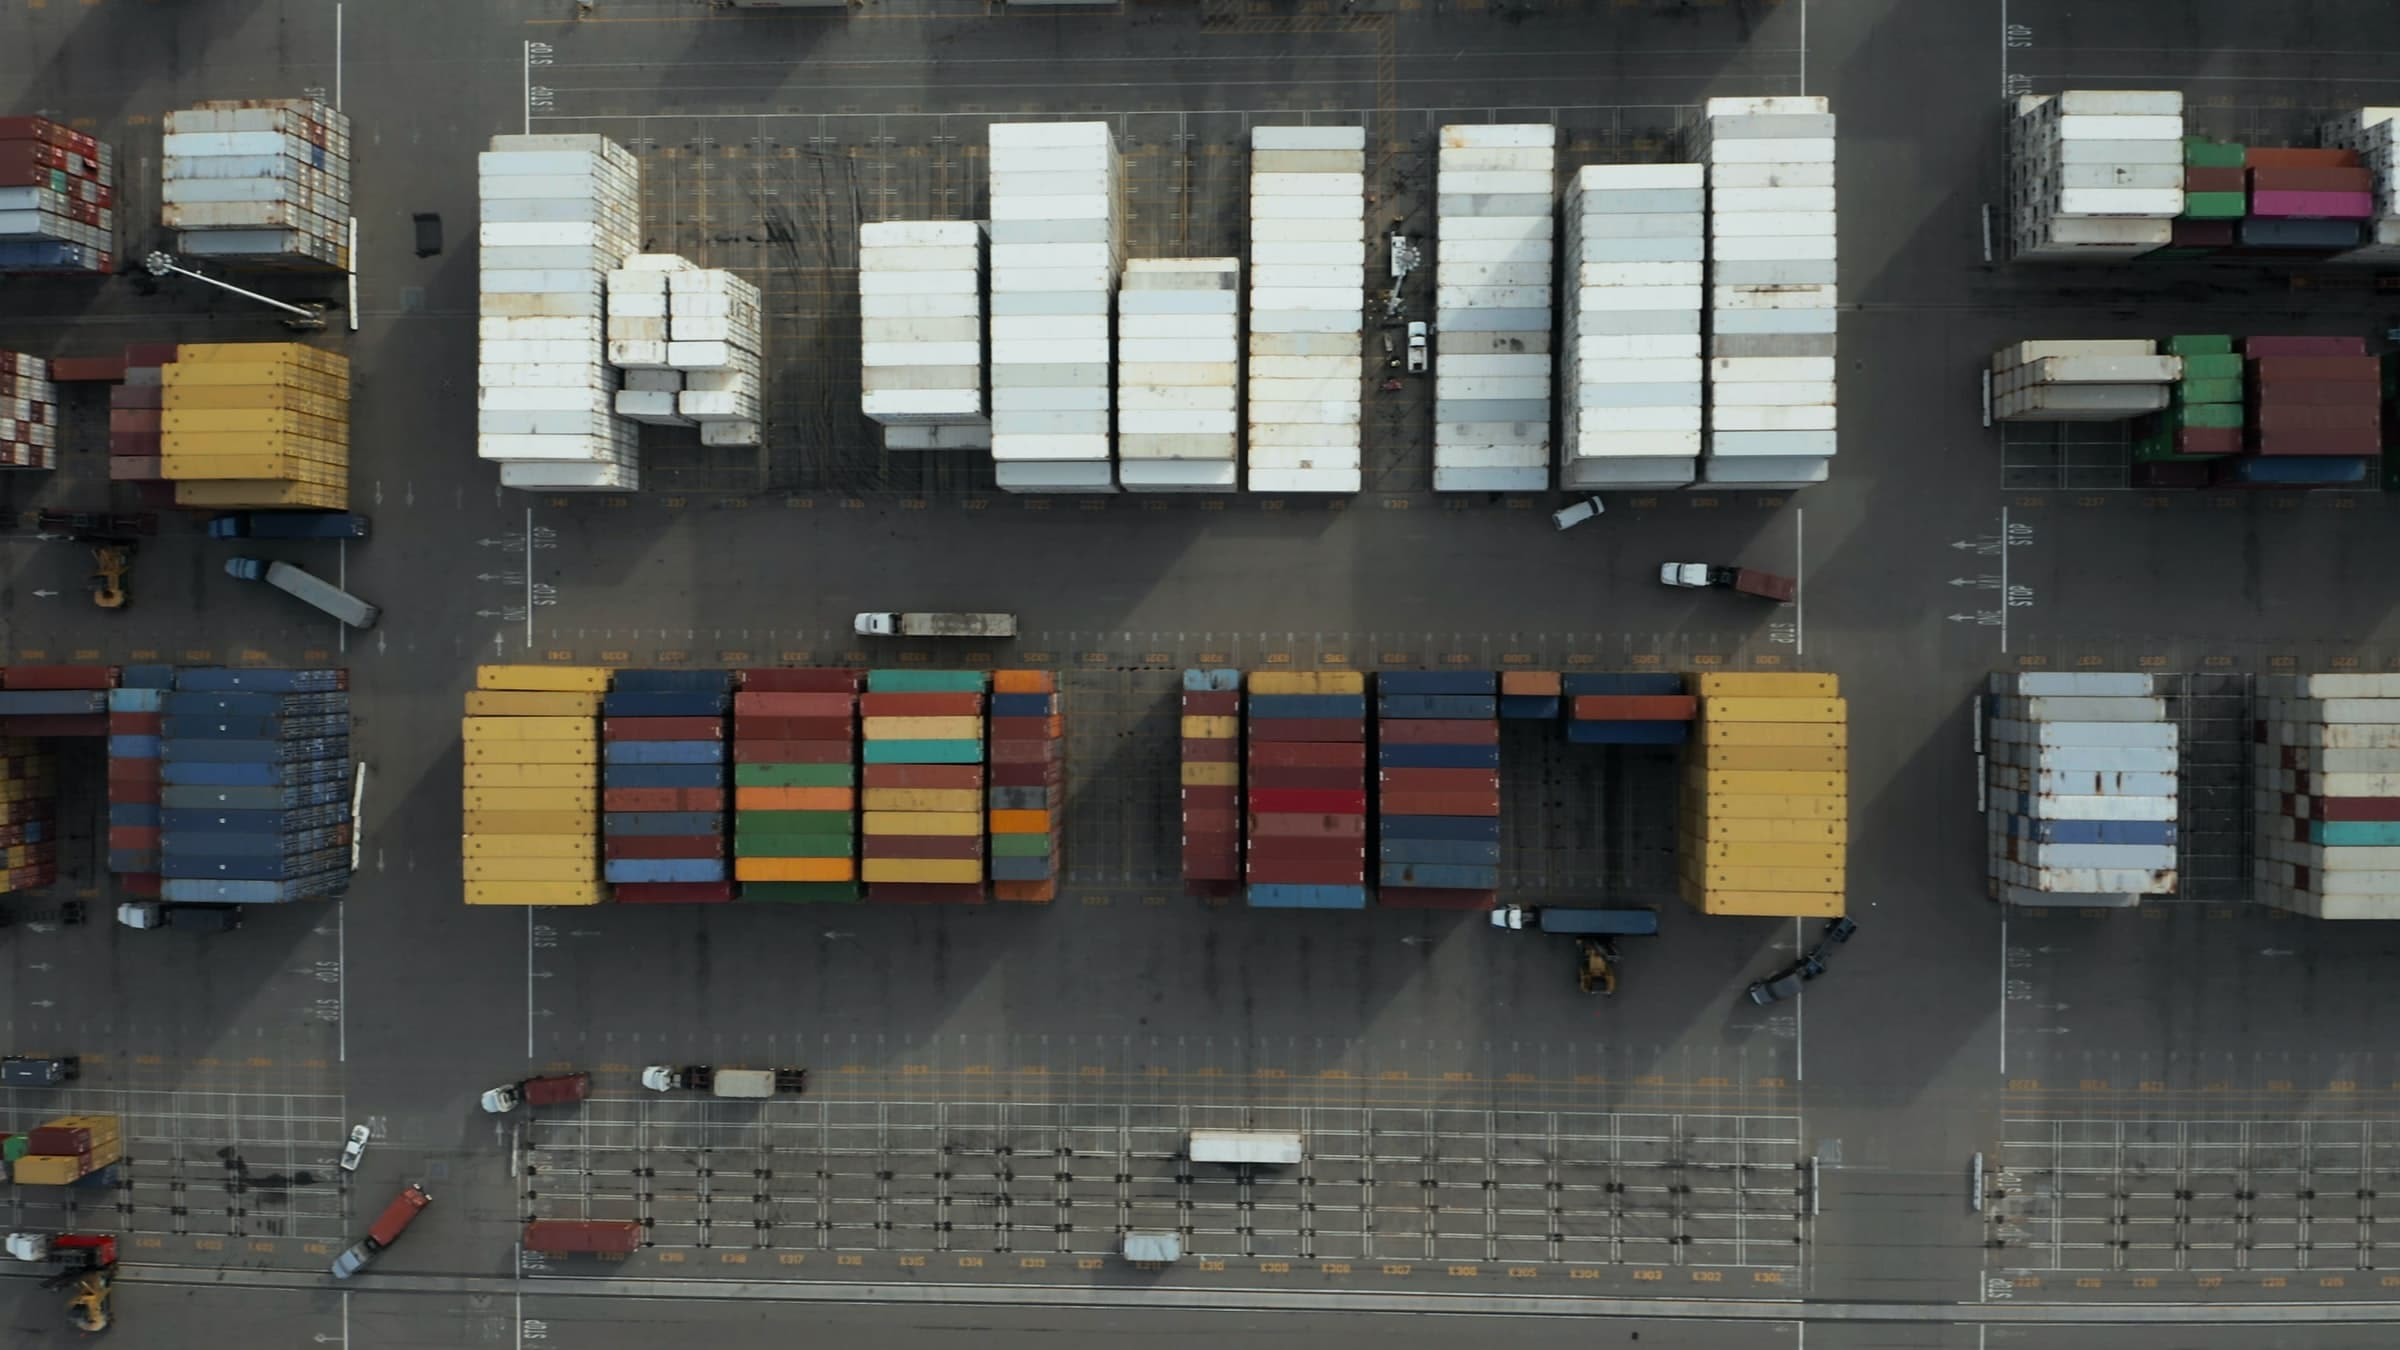 Aerial photo of a shipping yard with containers